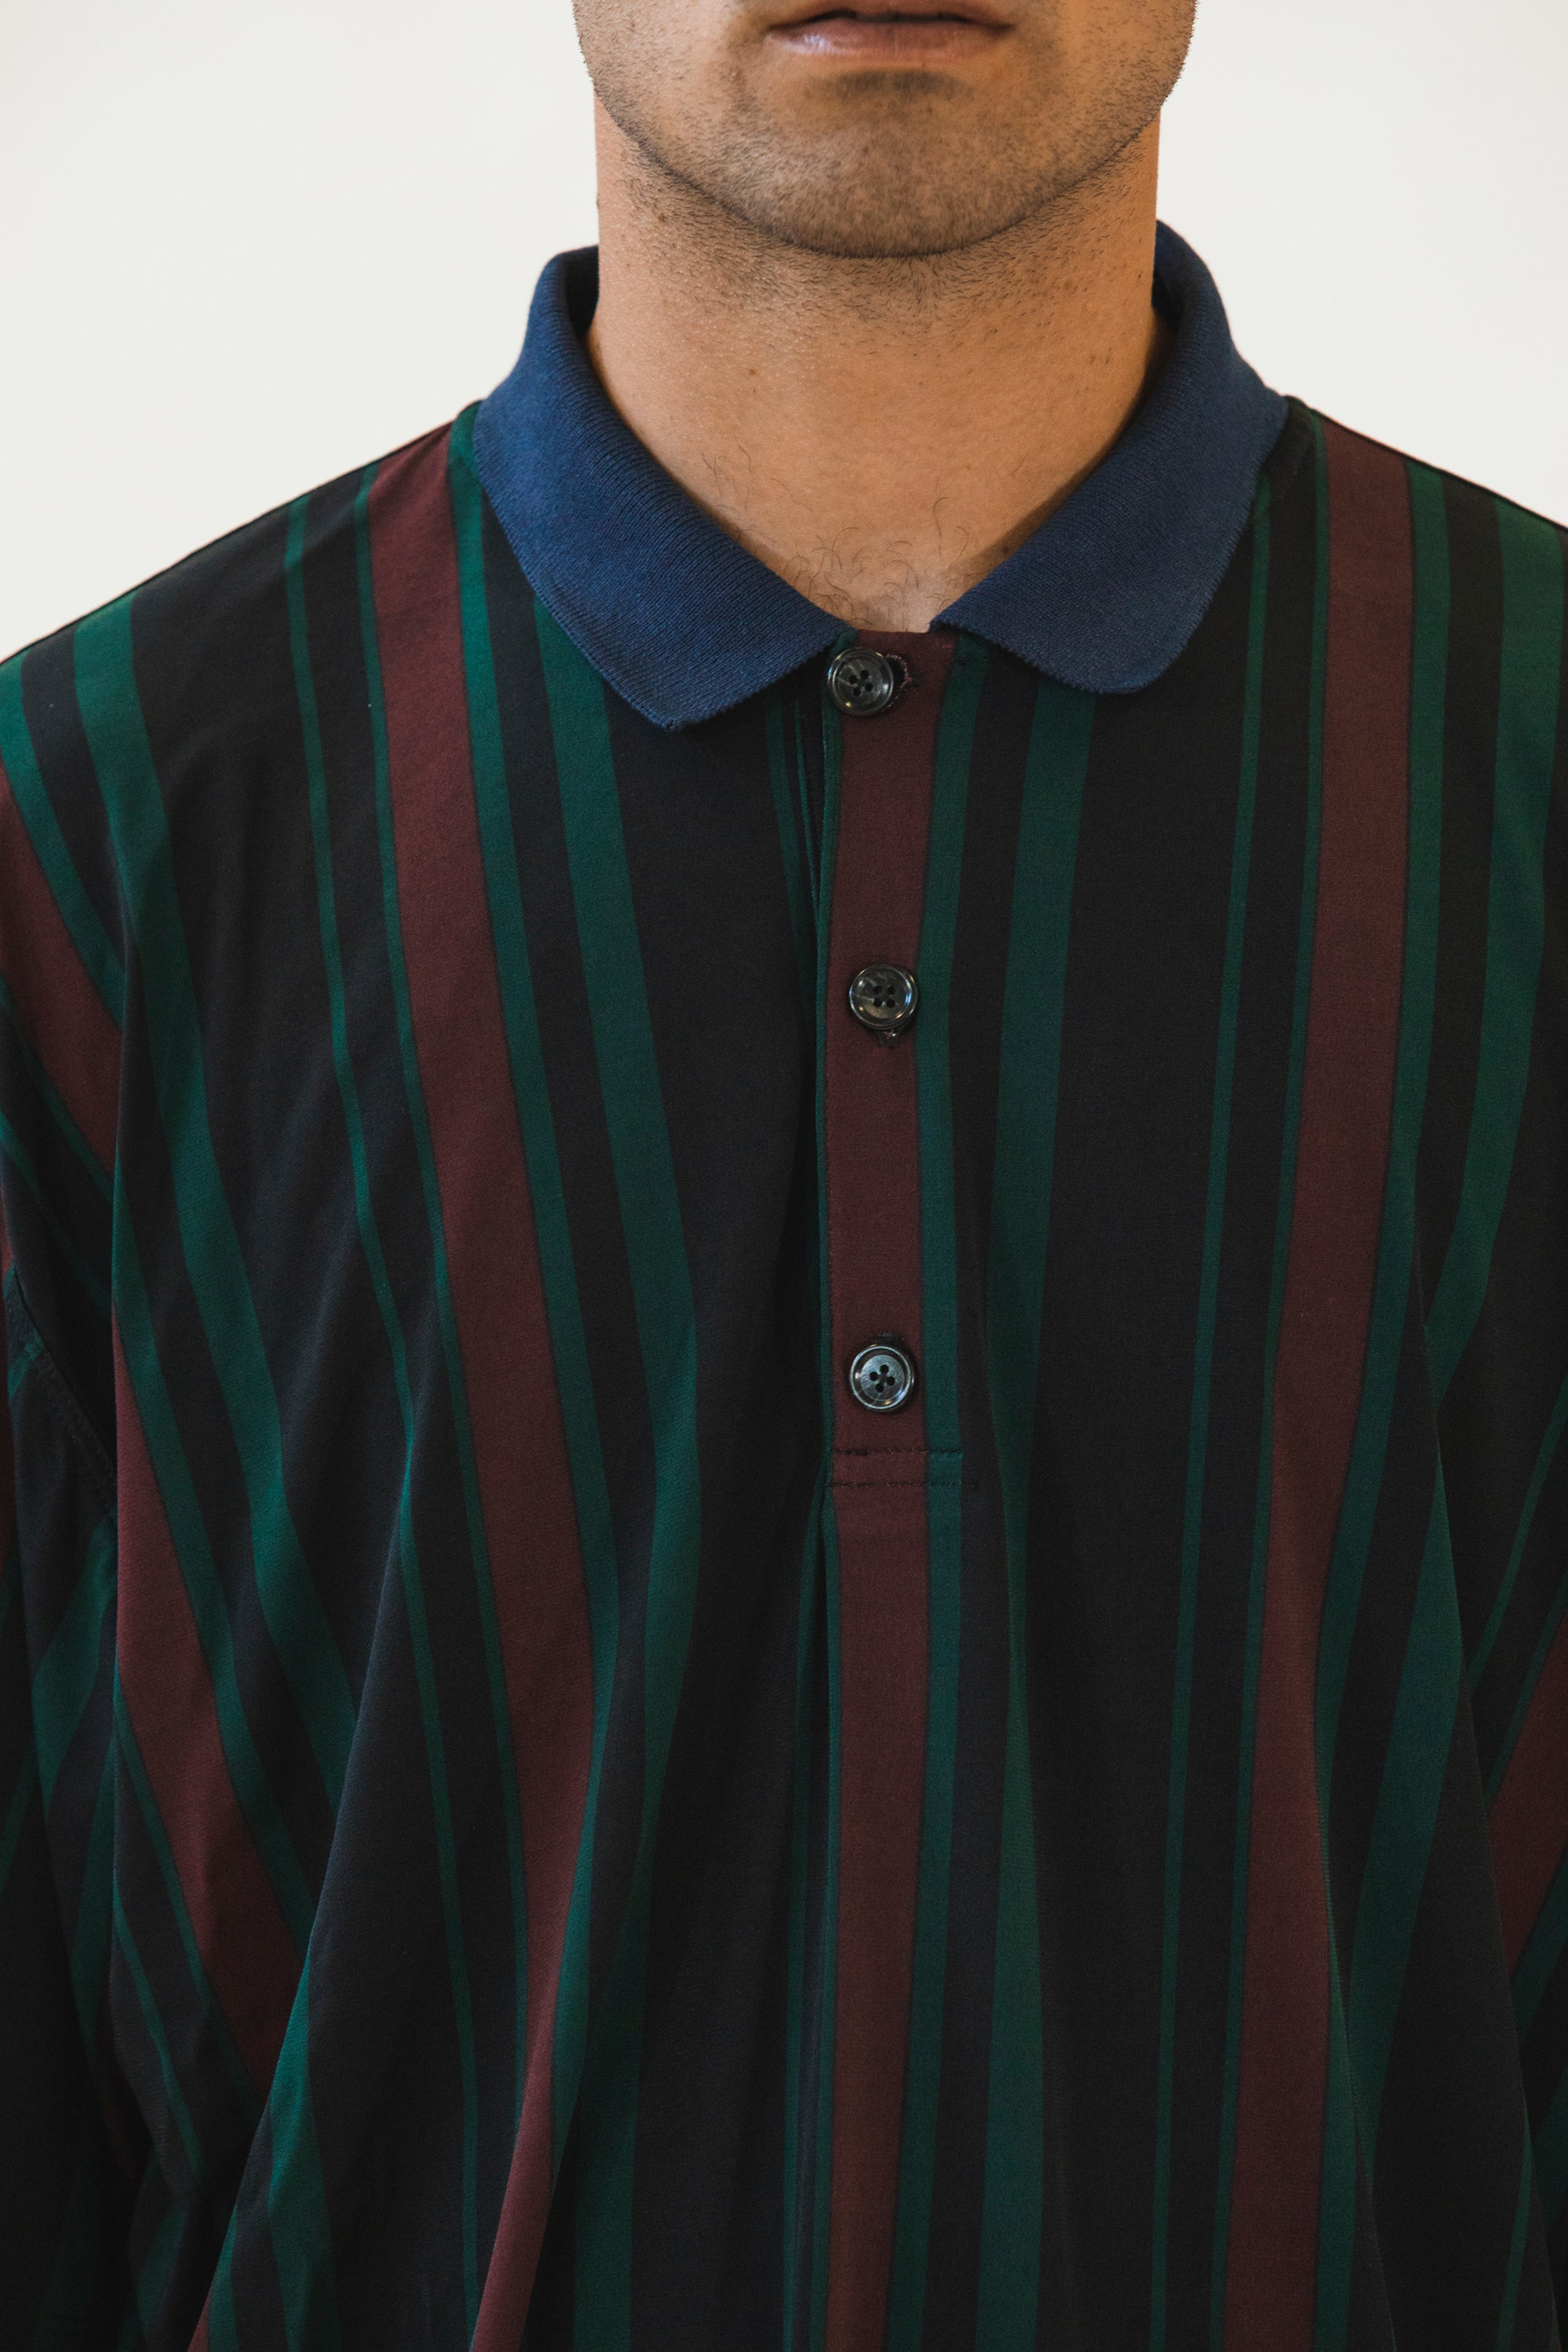 Collared Sport Shirt Green Black Burgundy